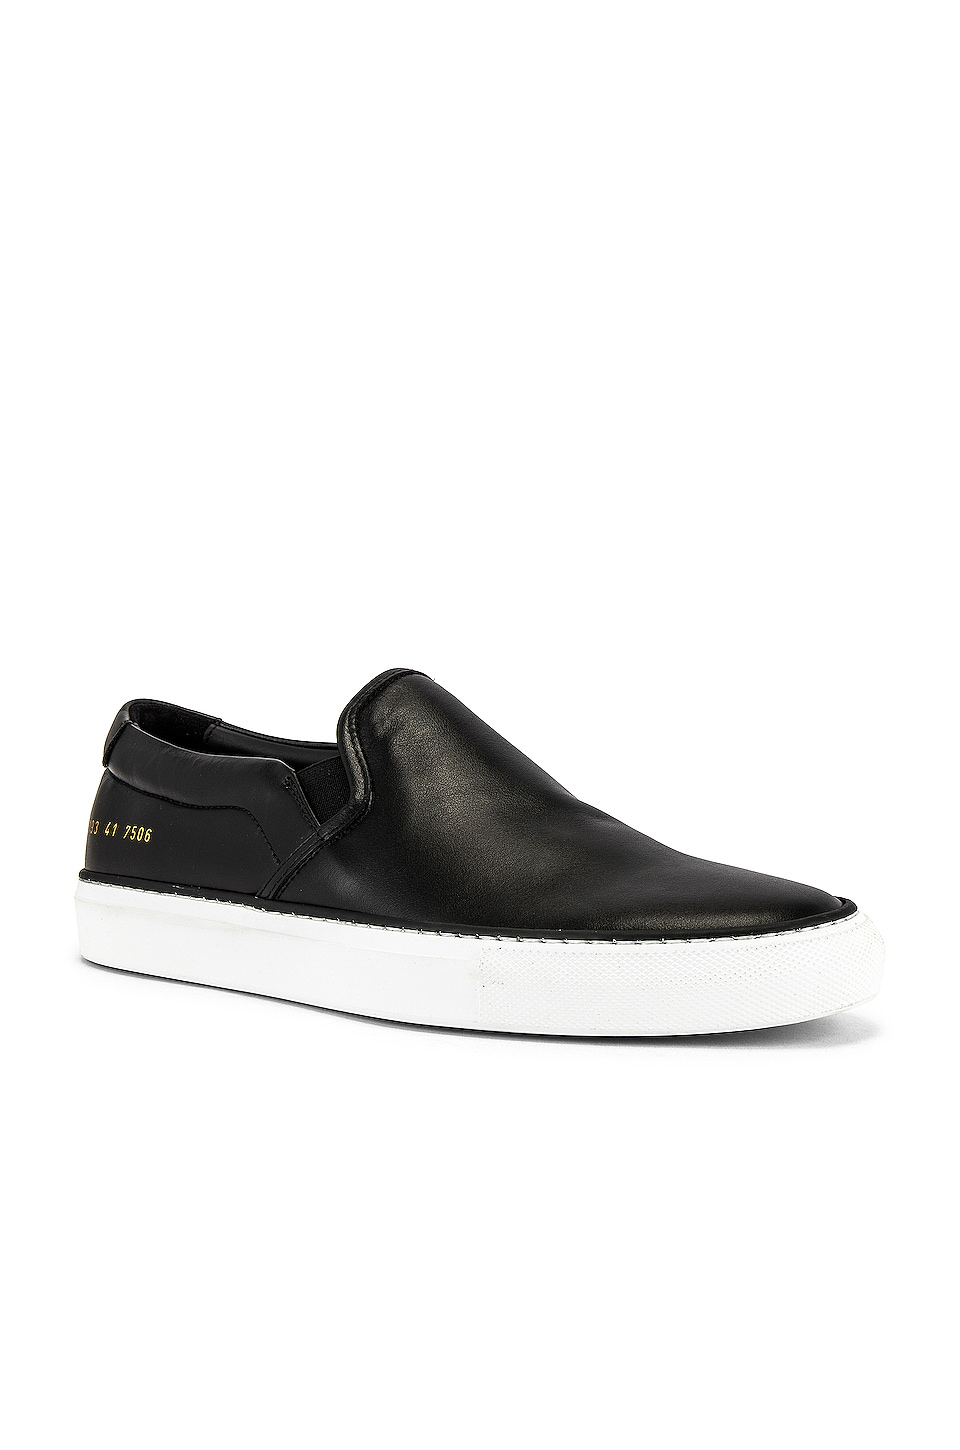 Common Projects Slip On Sneaker in